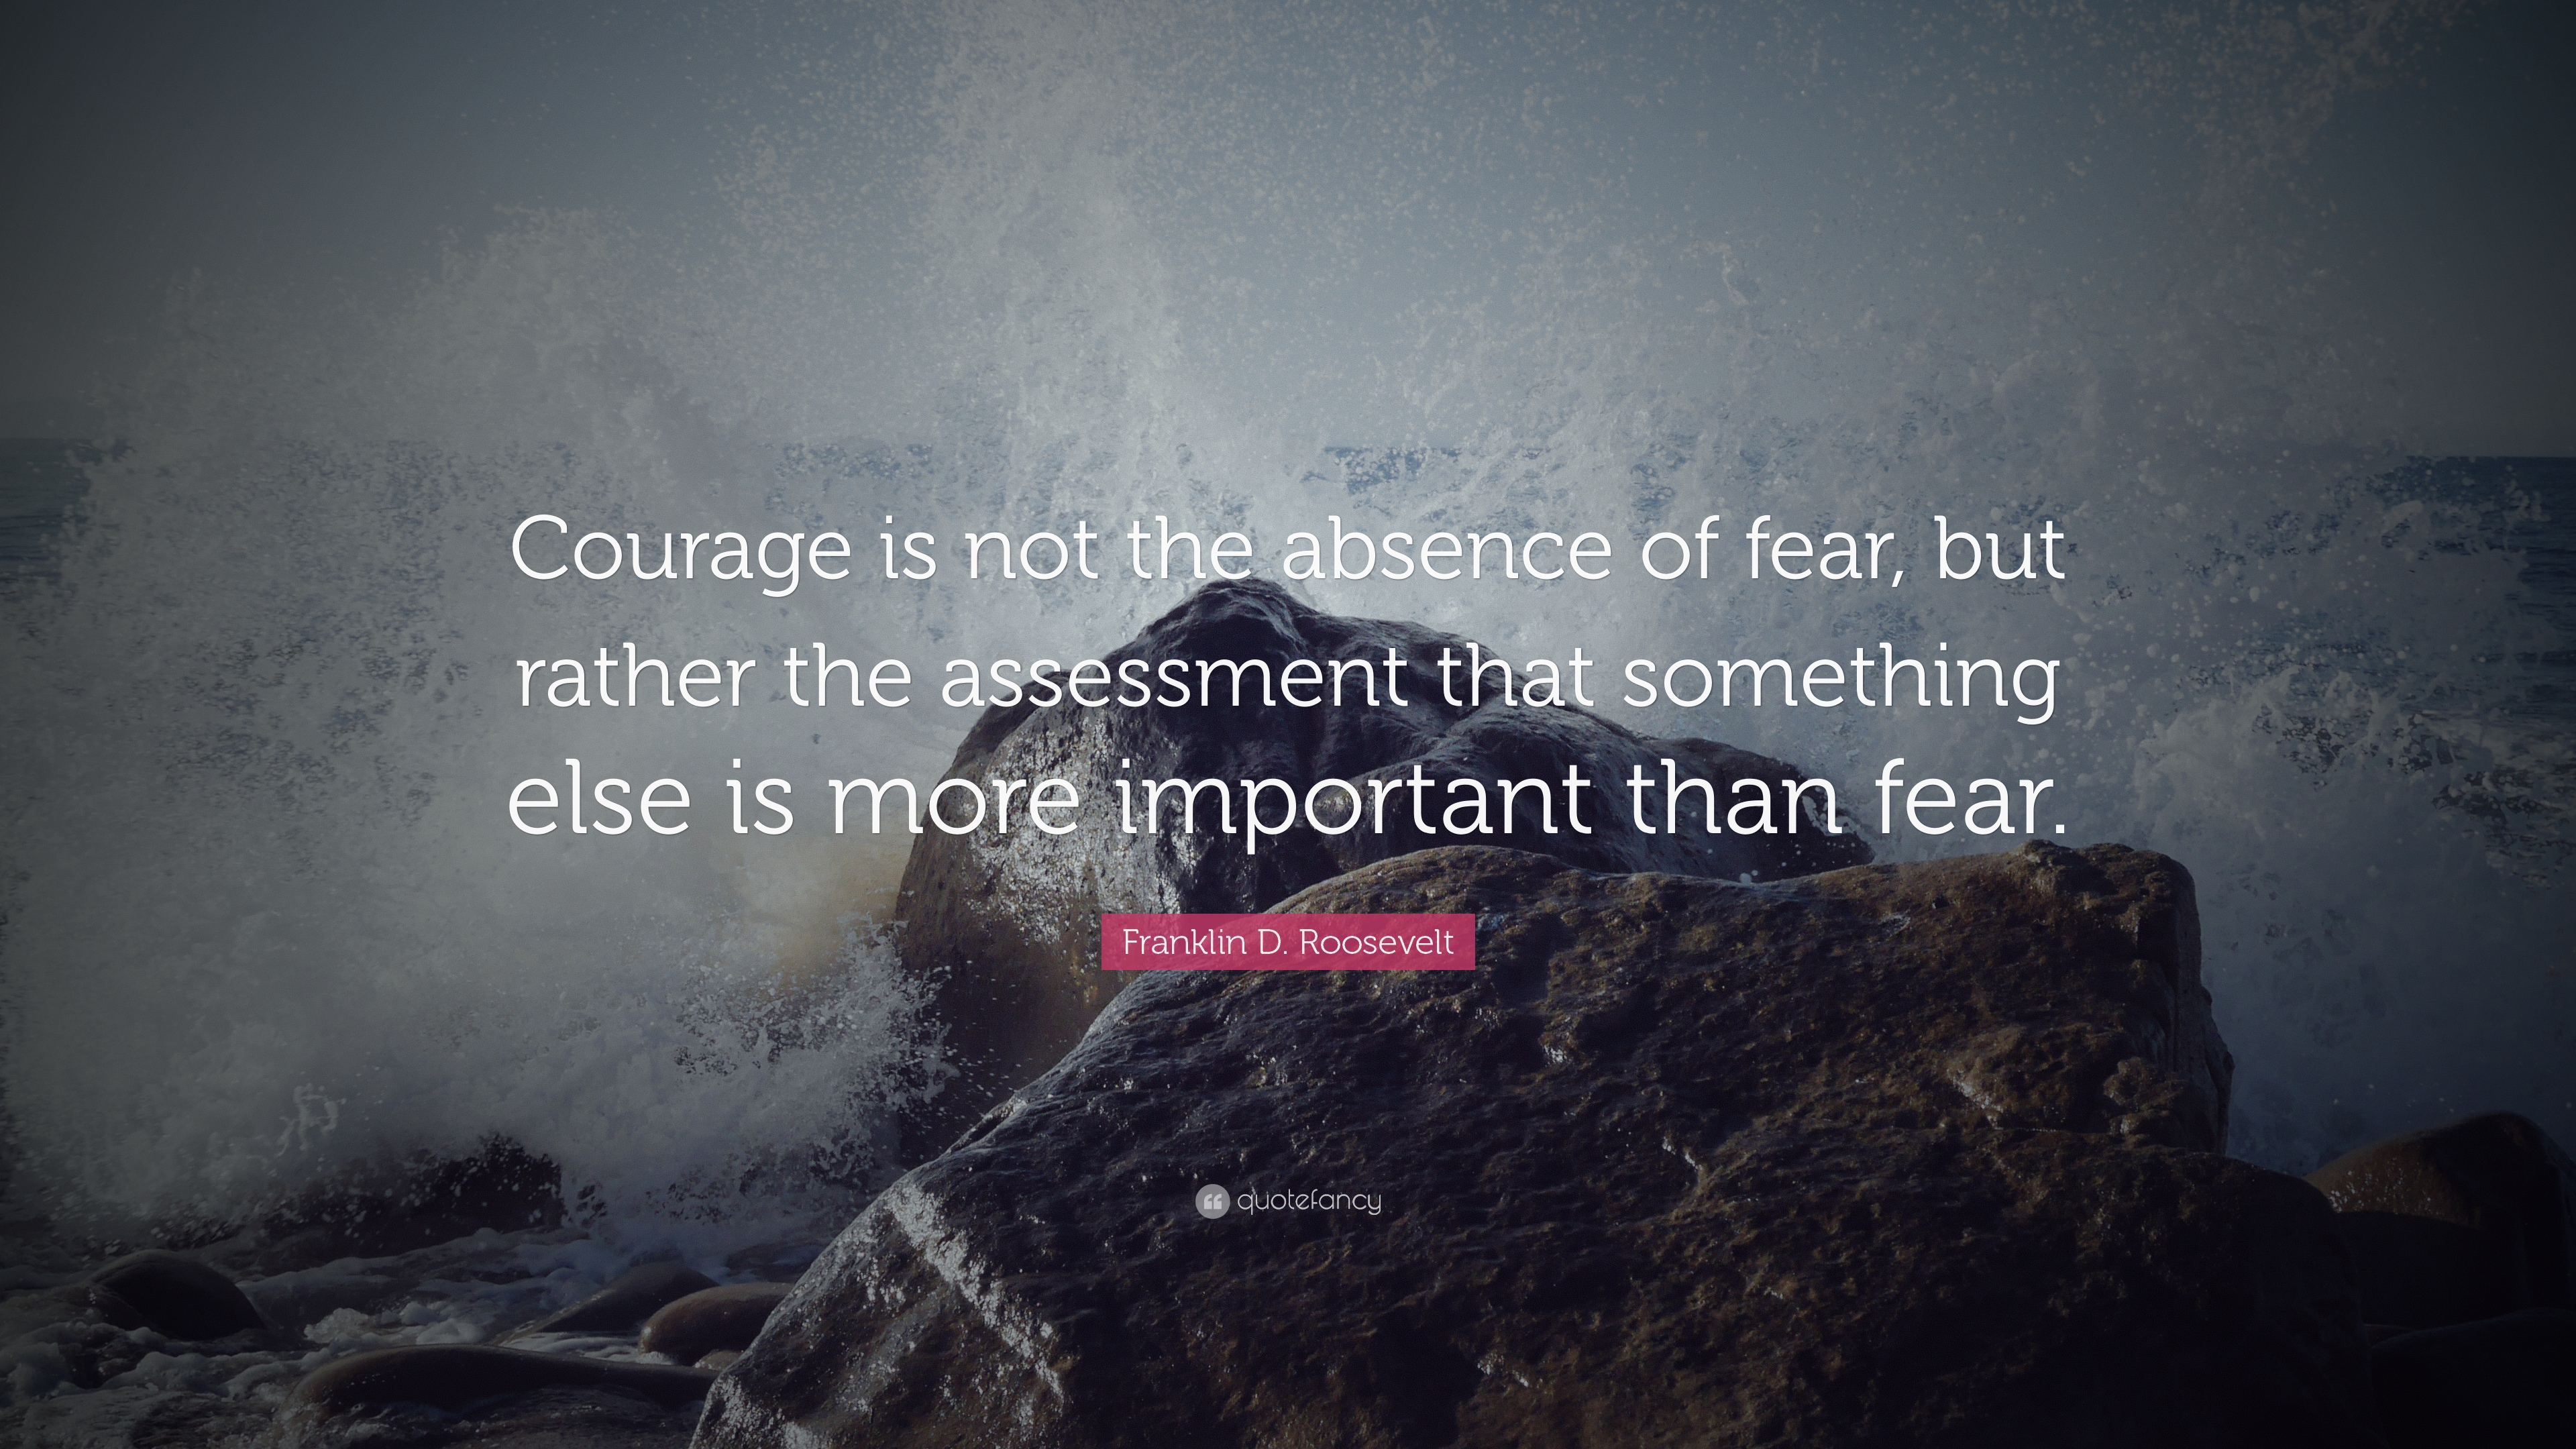 Image result for Courage is not a lack of fear, but the ability to act while facing fear. by Franklin D. Roosevelt